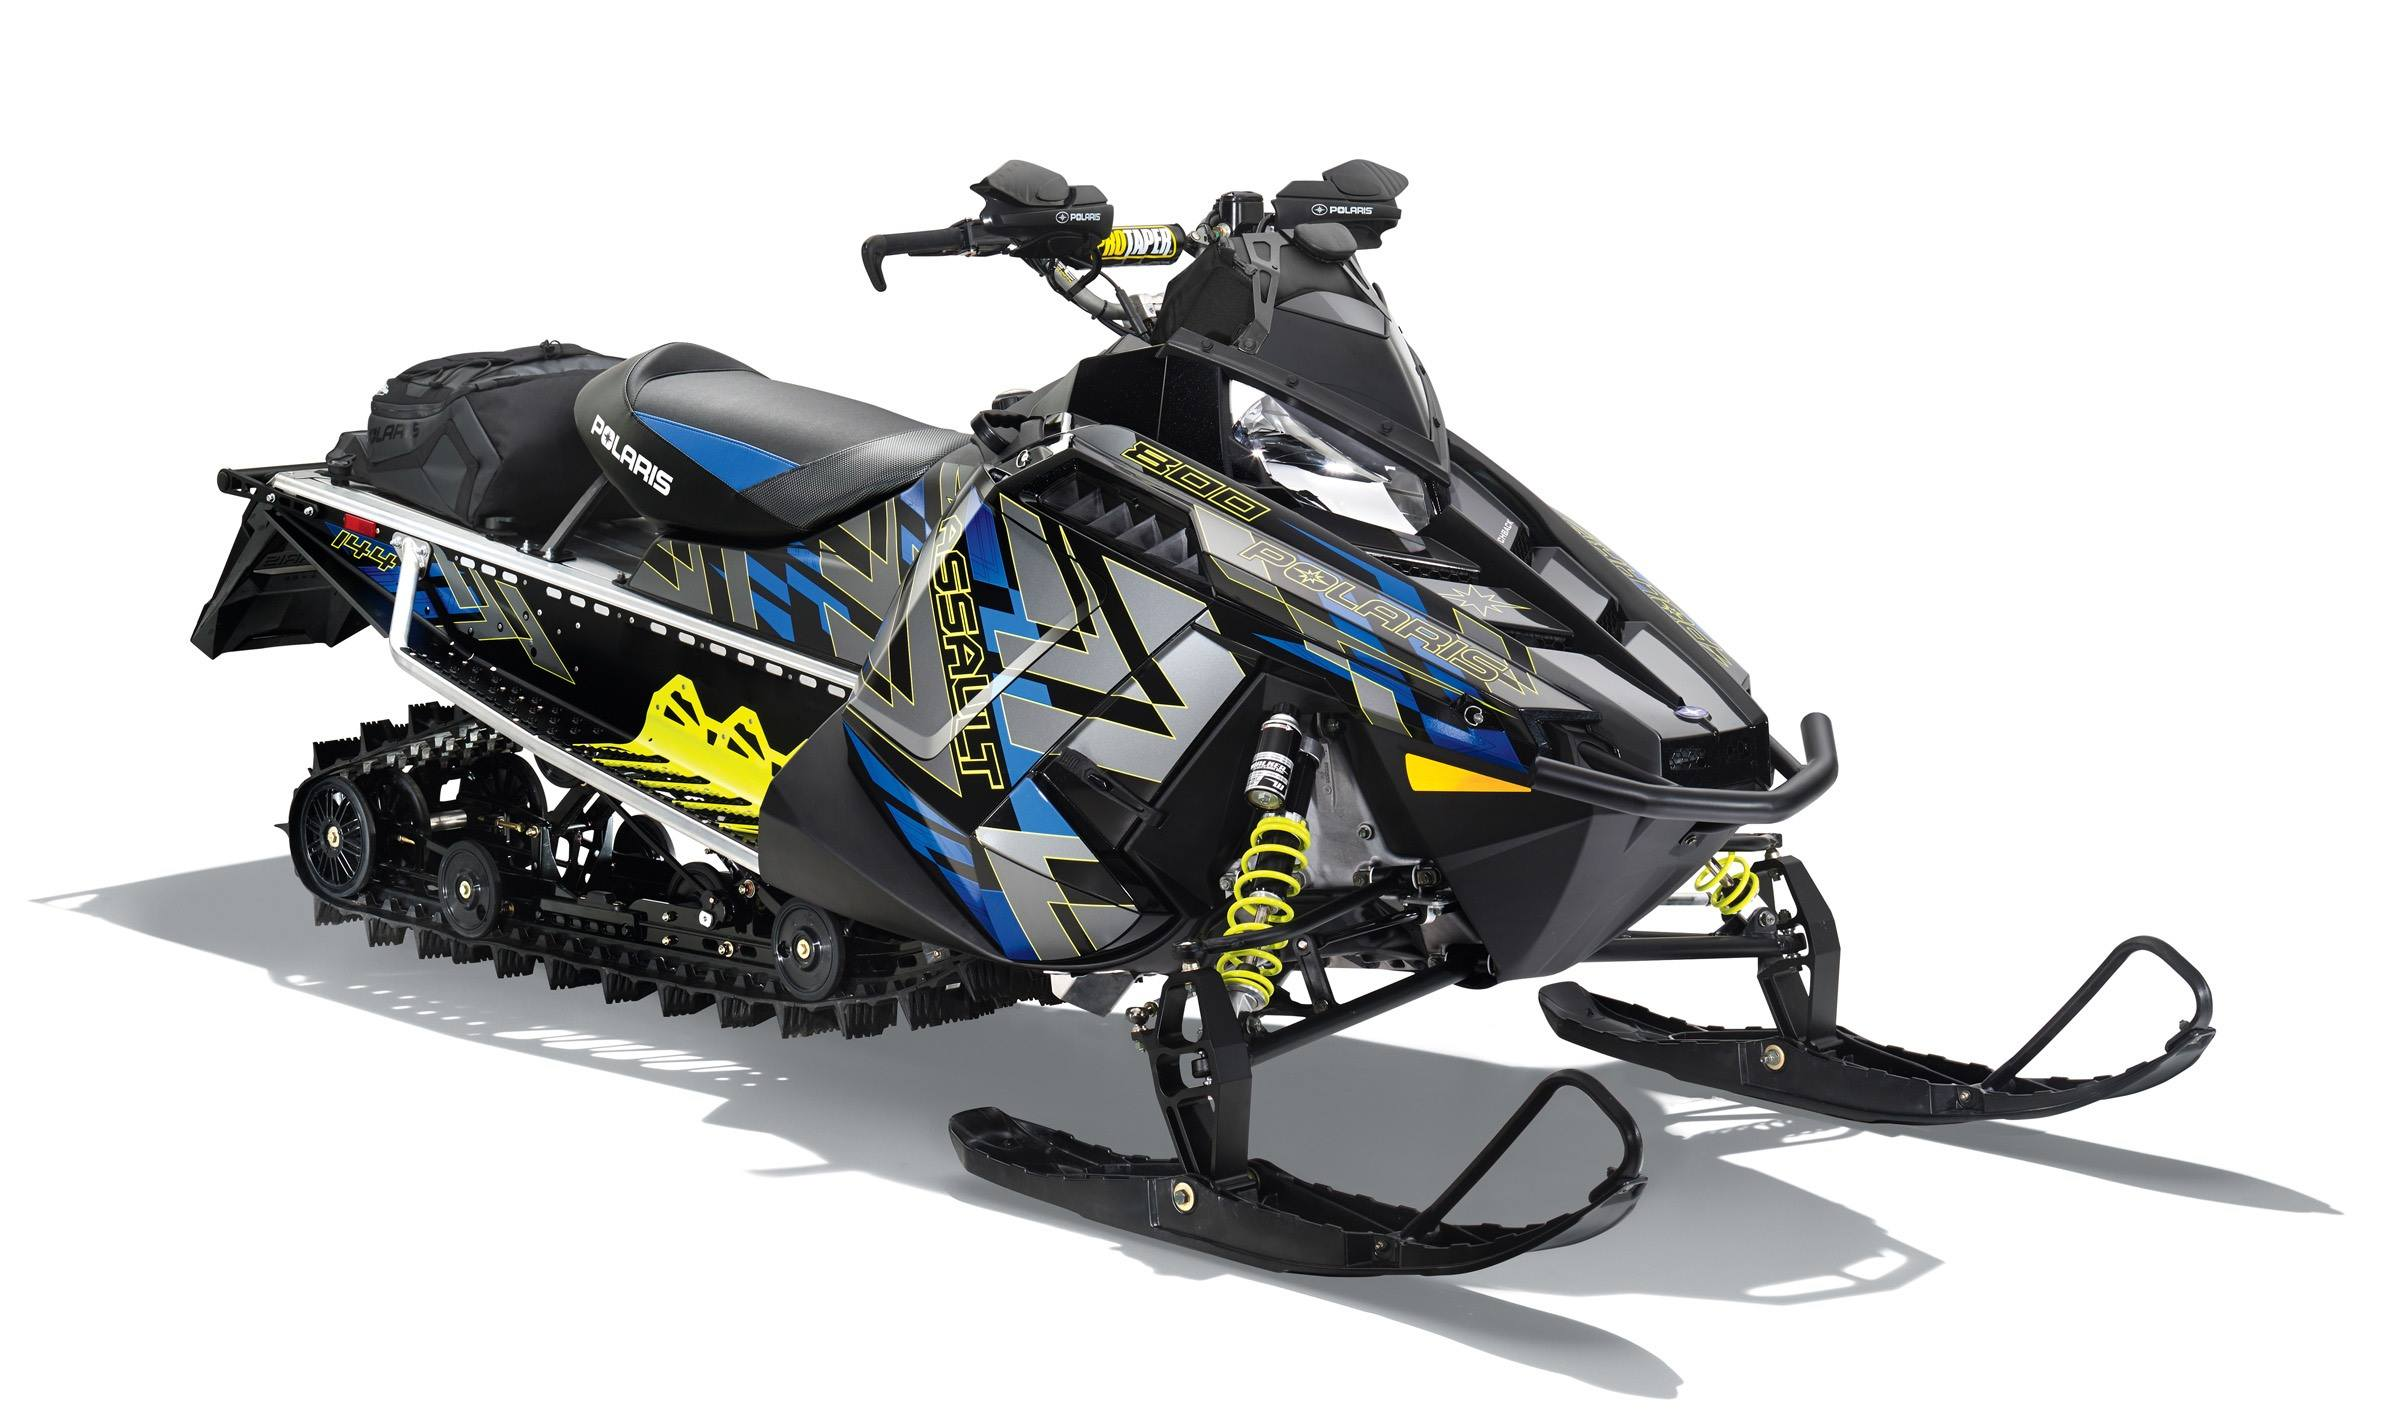 2016 Polaris 800 SWITCHBACK ASSAULT144 Terrain Dominator Series LE ES in El Campo, Texas